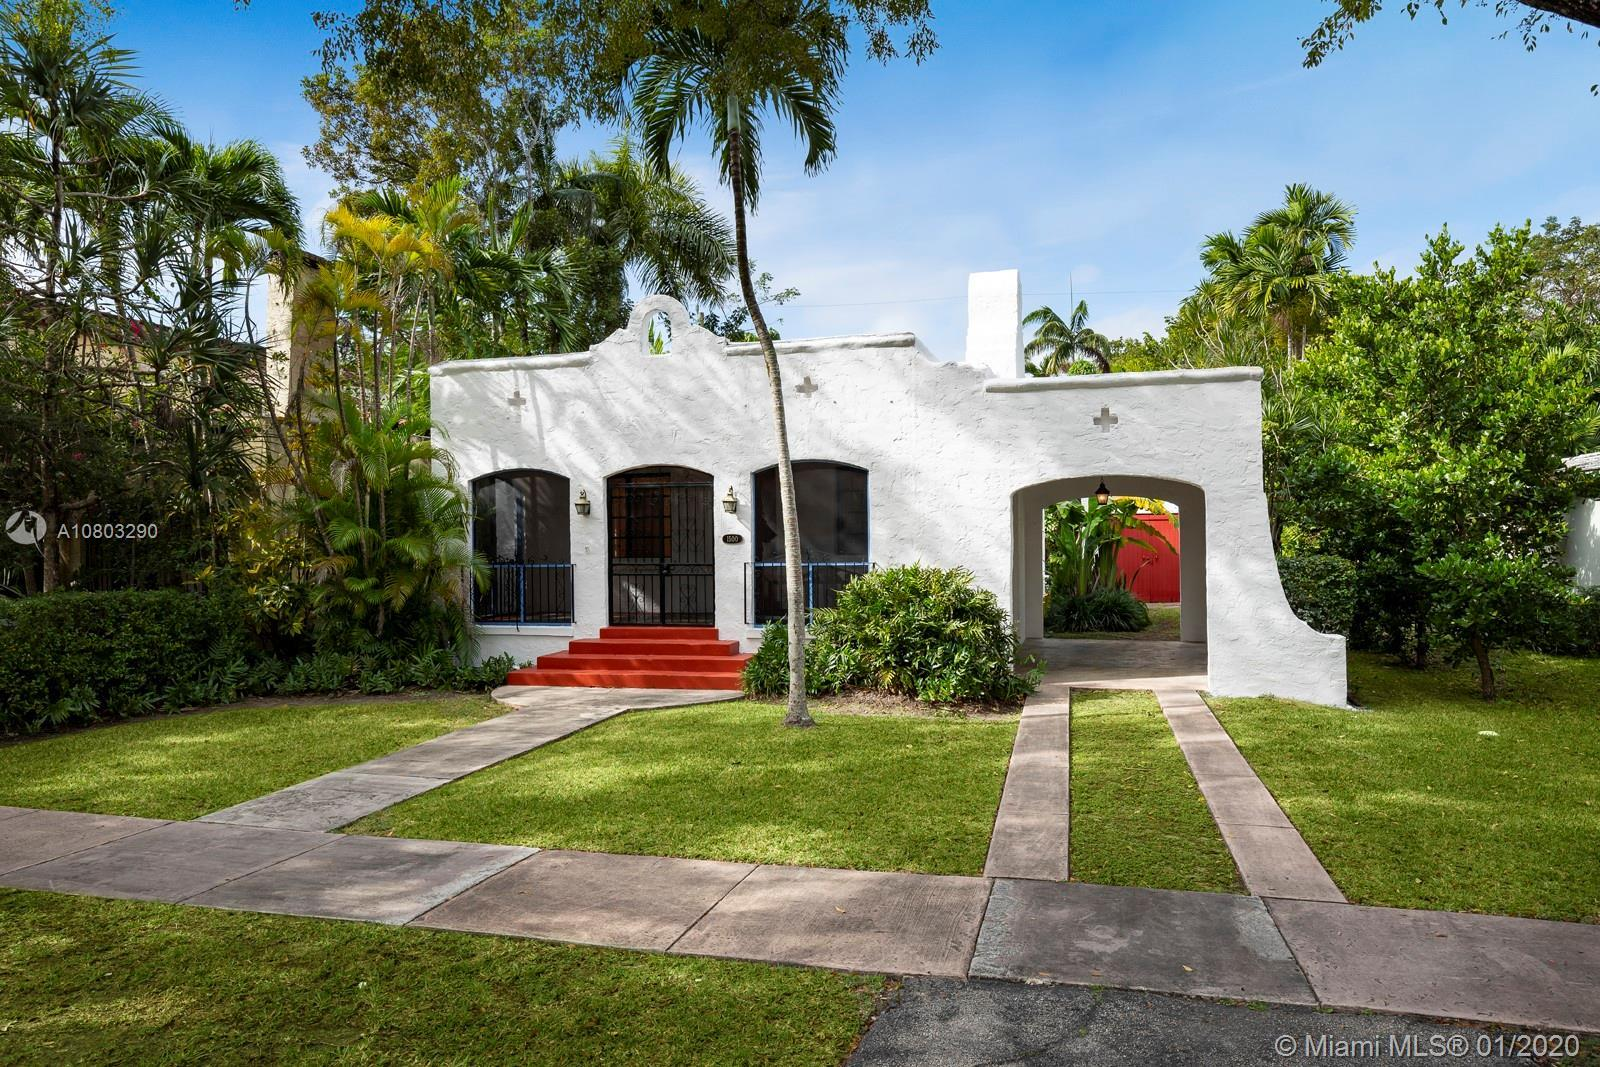 Be smitten by this adorable 2/1 + Den on tree-lined Madrid Street in Coral Gables. Freshly painted i